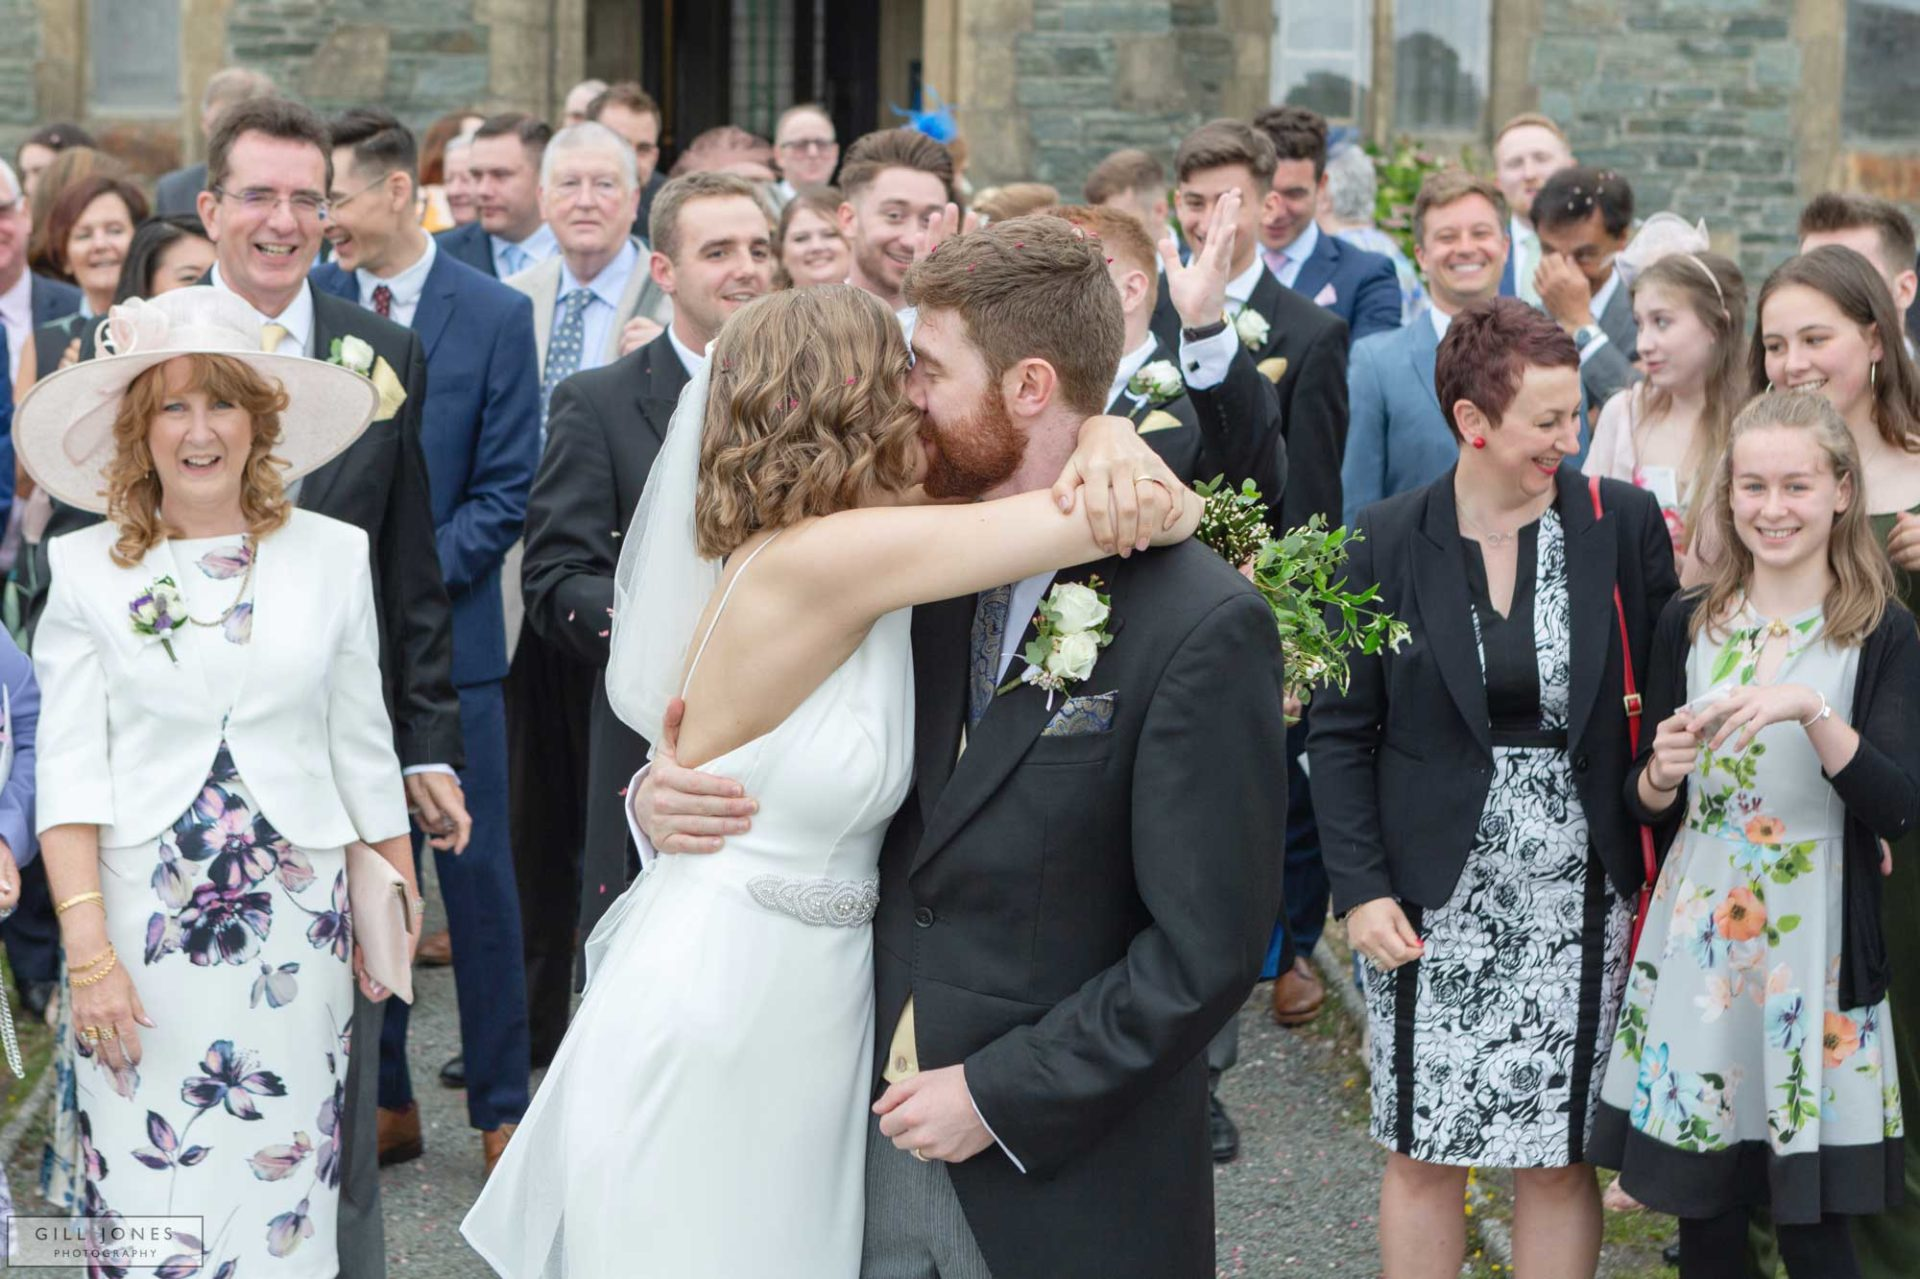 the bride and grrom are kissing each other infront of their guests outside St. Ffraids church in Trearddur Bay